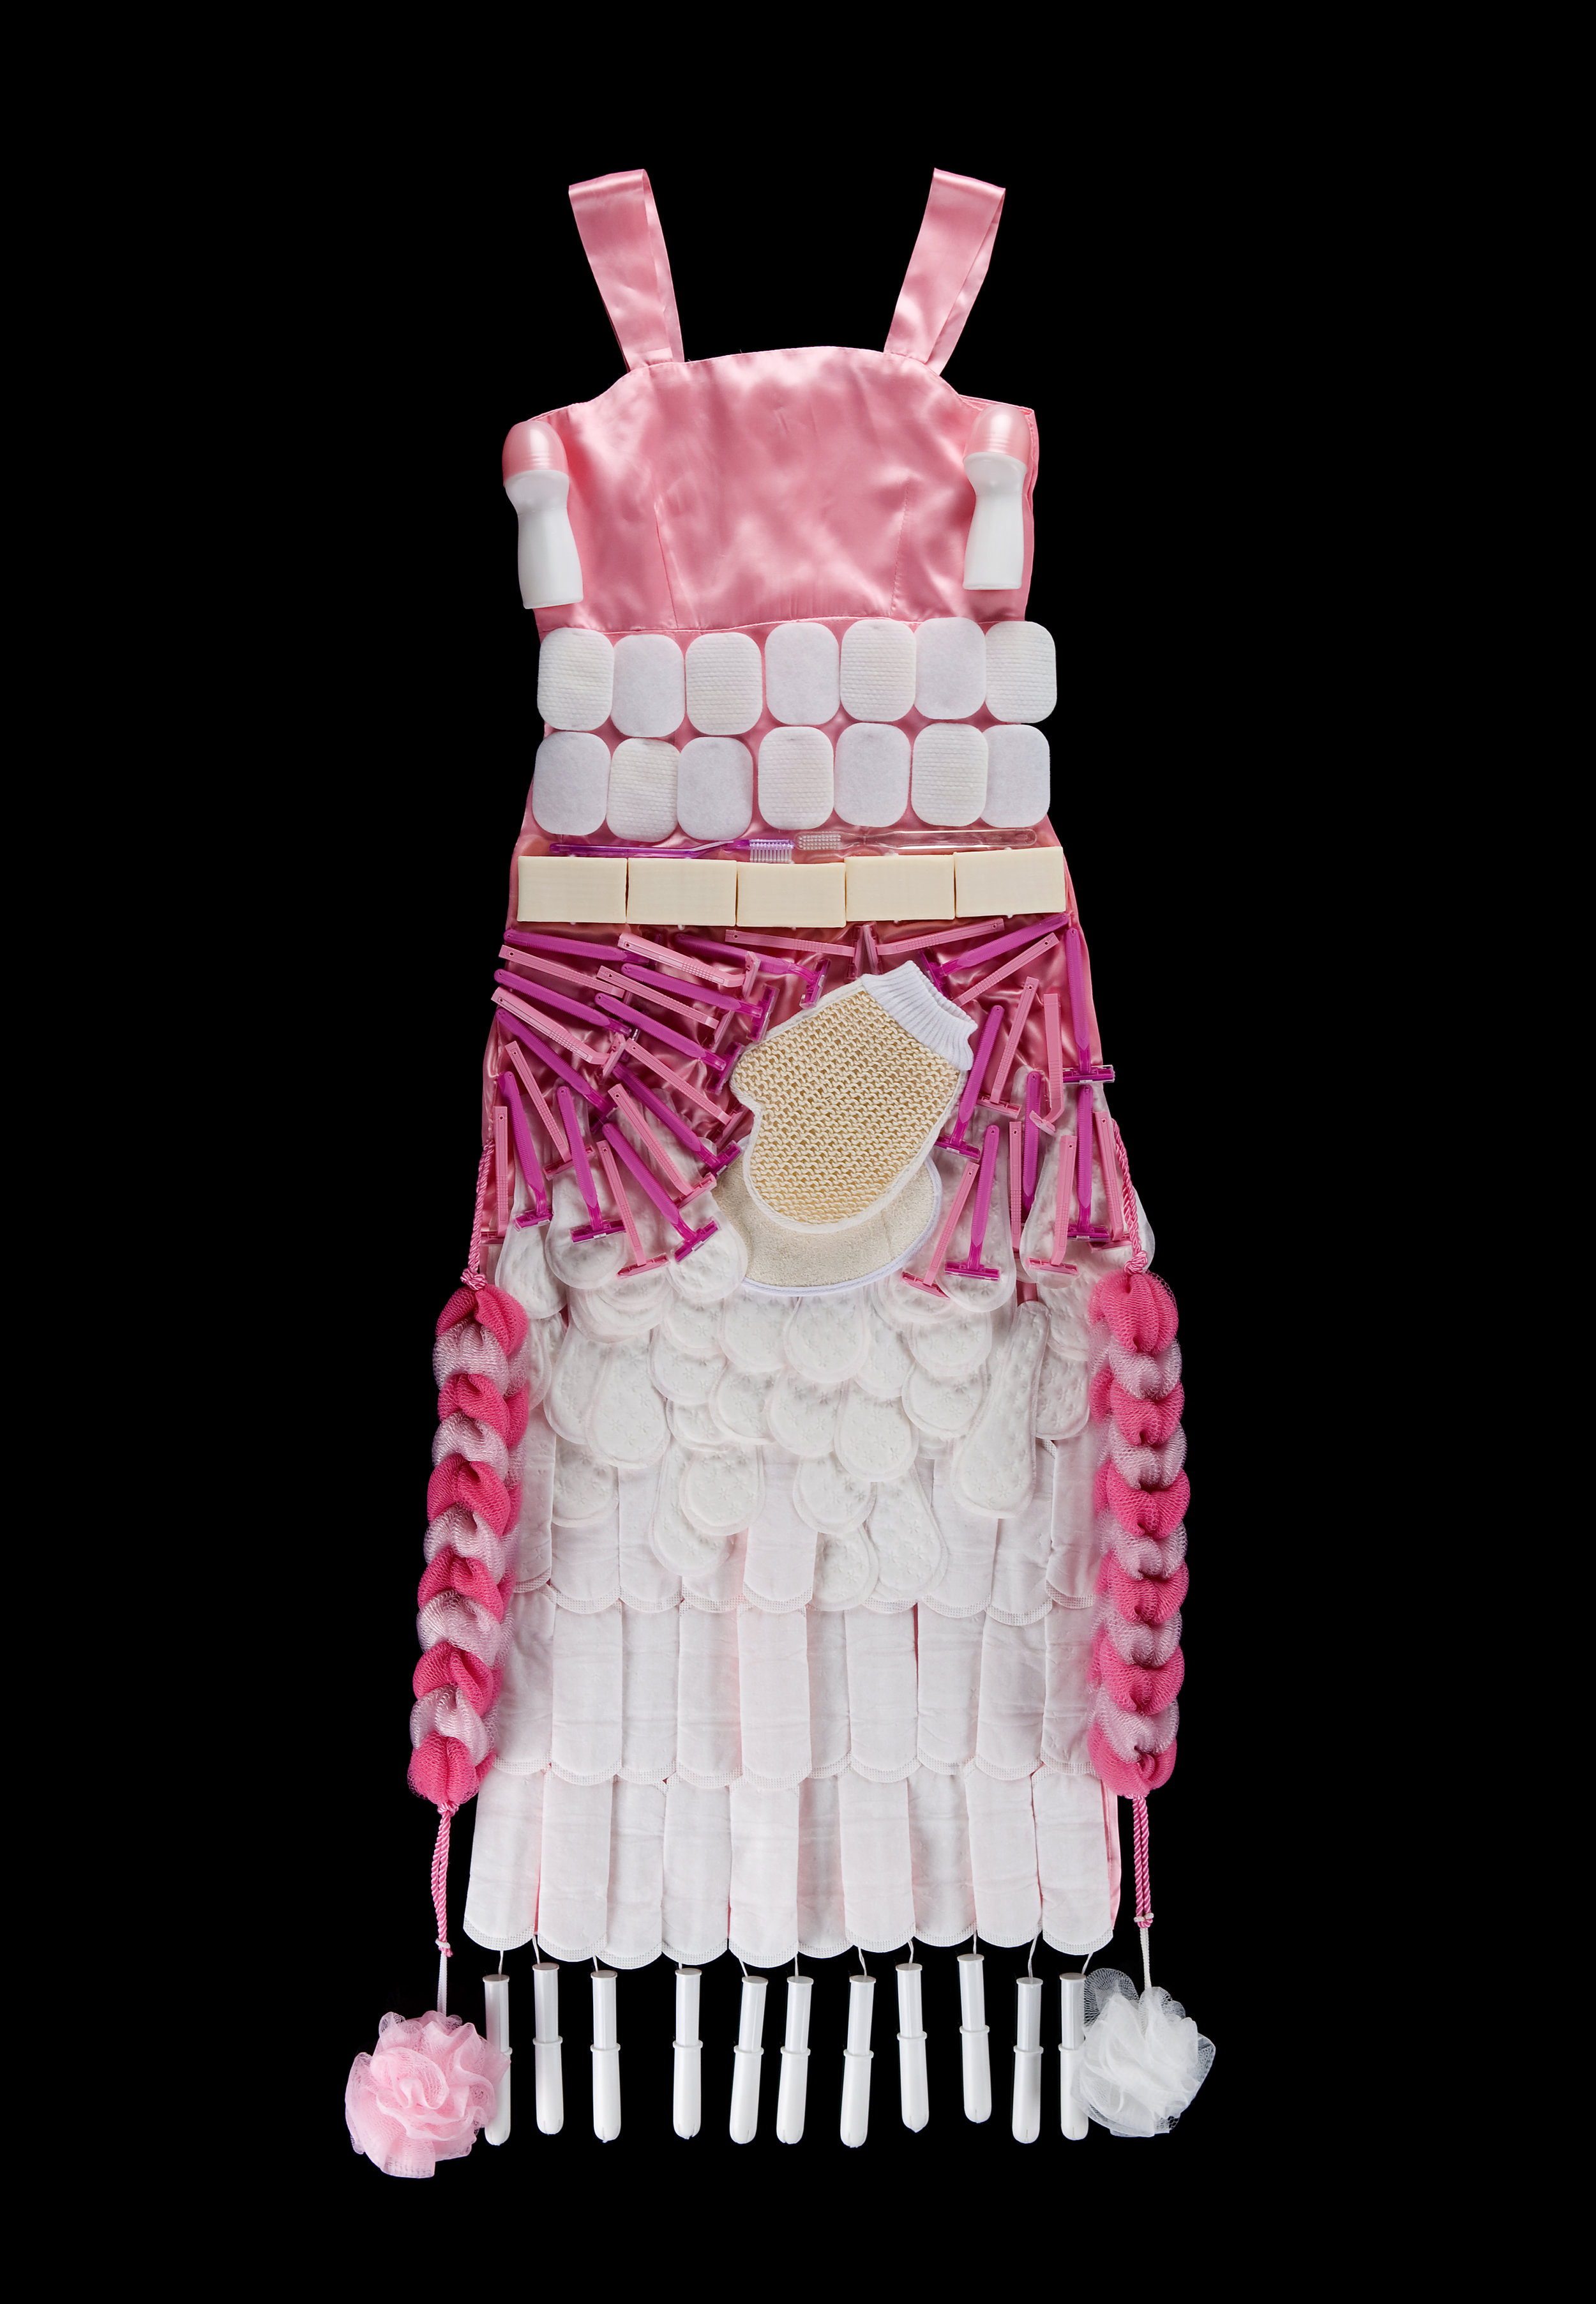 Women Must Be Clean (La Mujer Tiene que Ser Limpia)  • 58 X 22 • dress, hygiene products